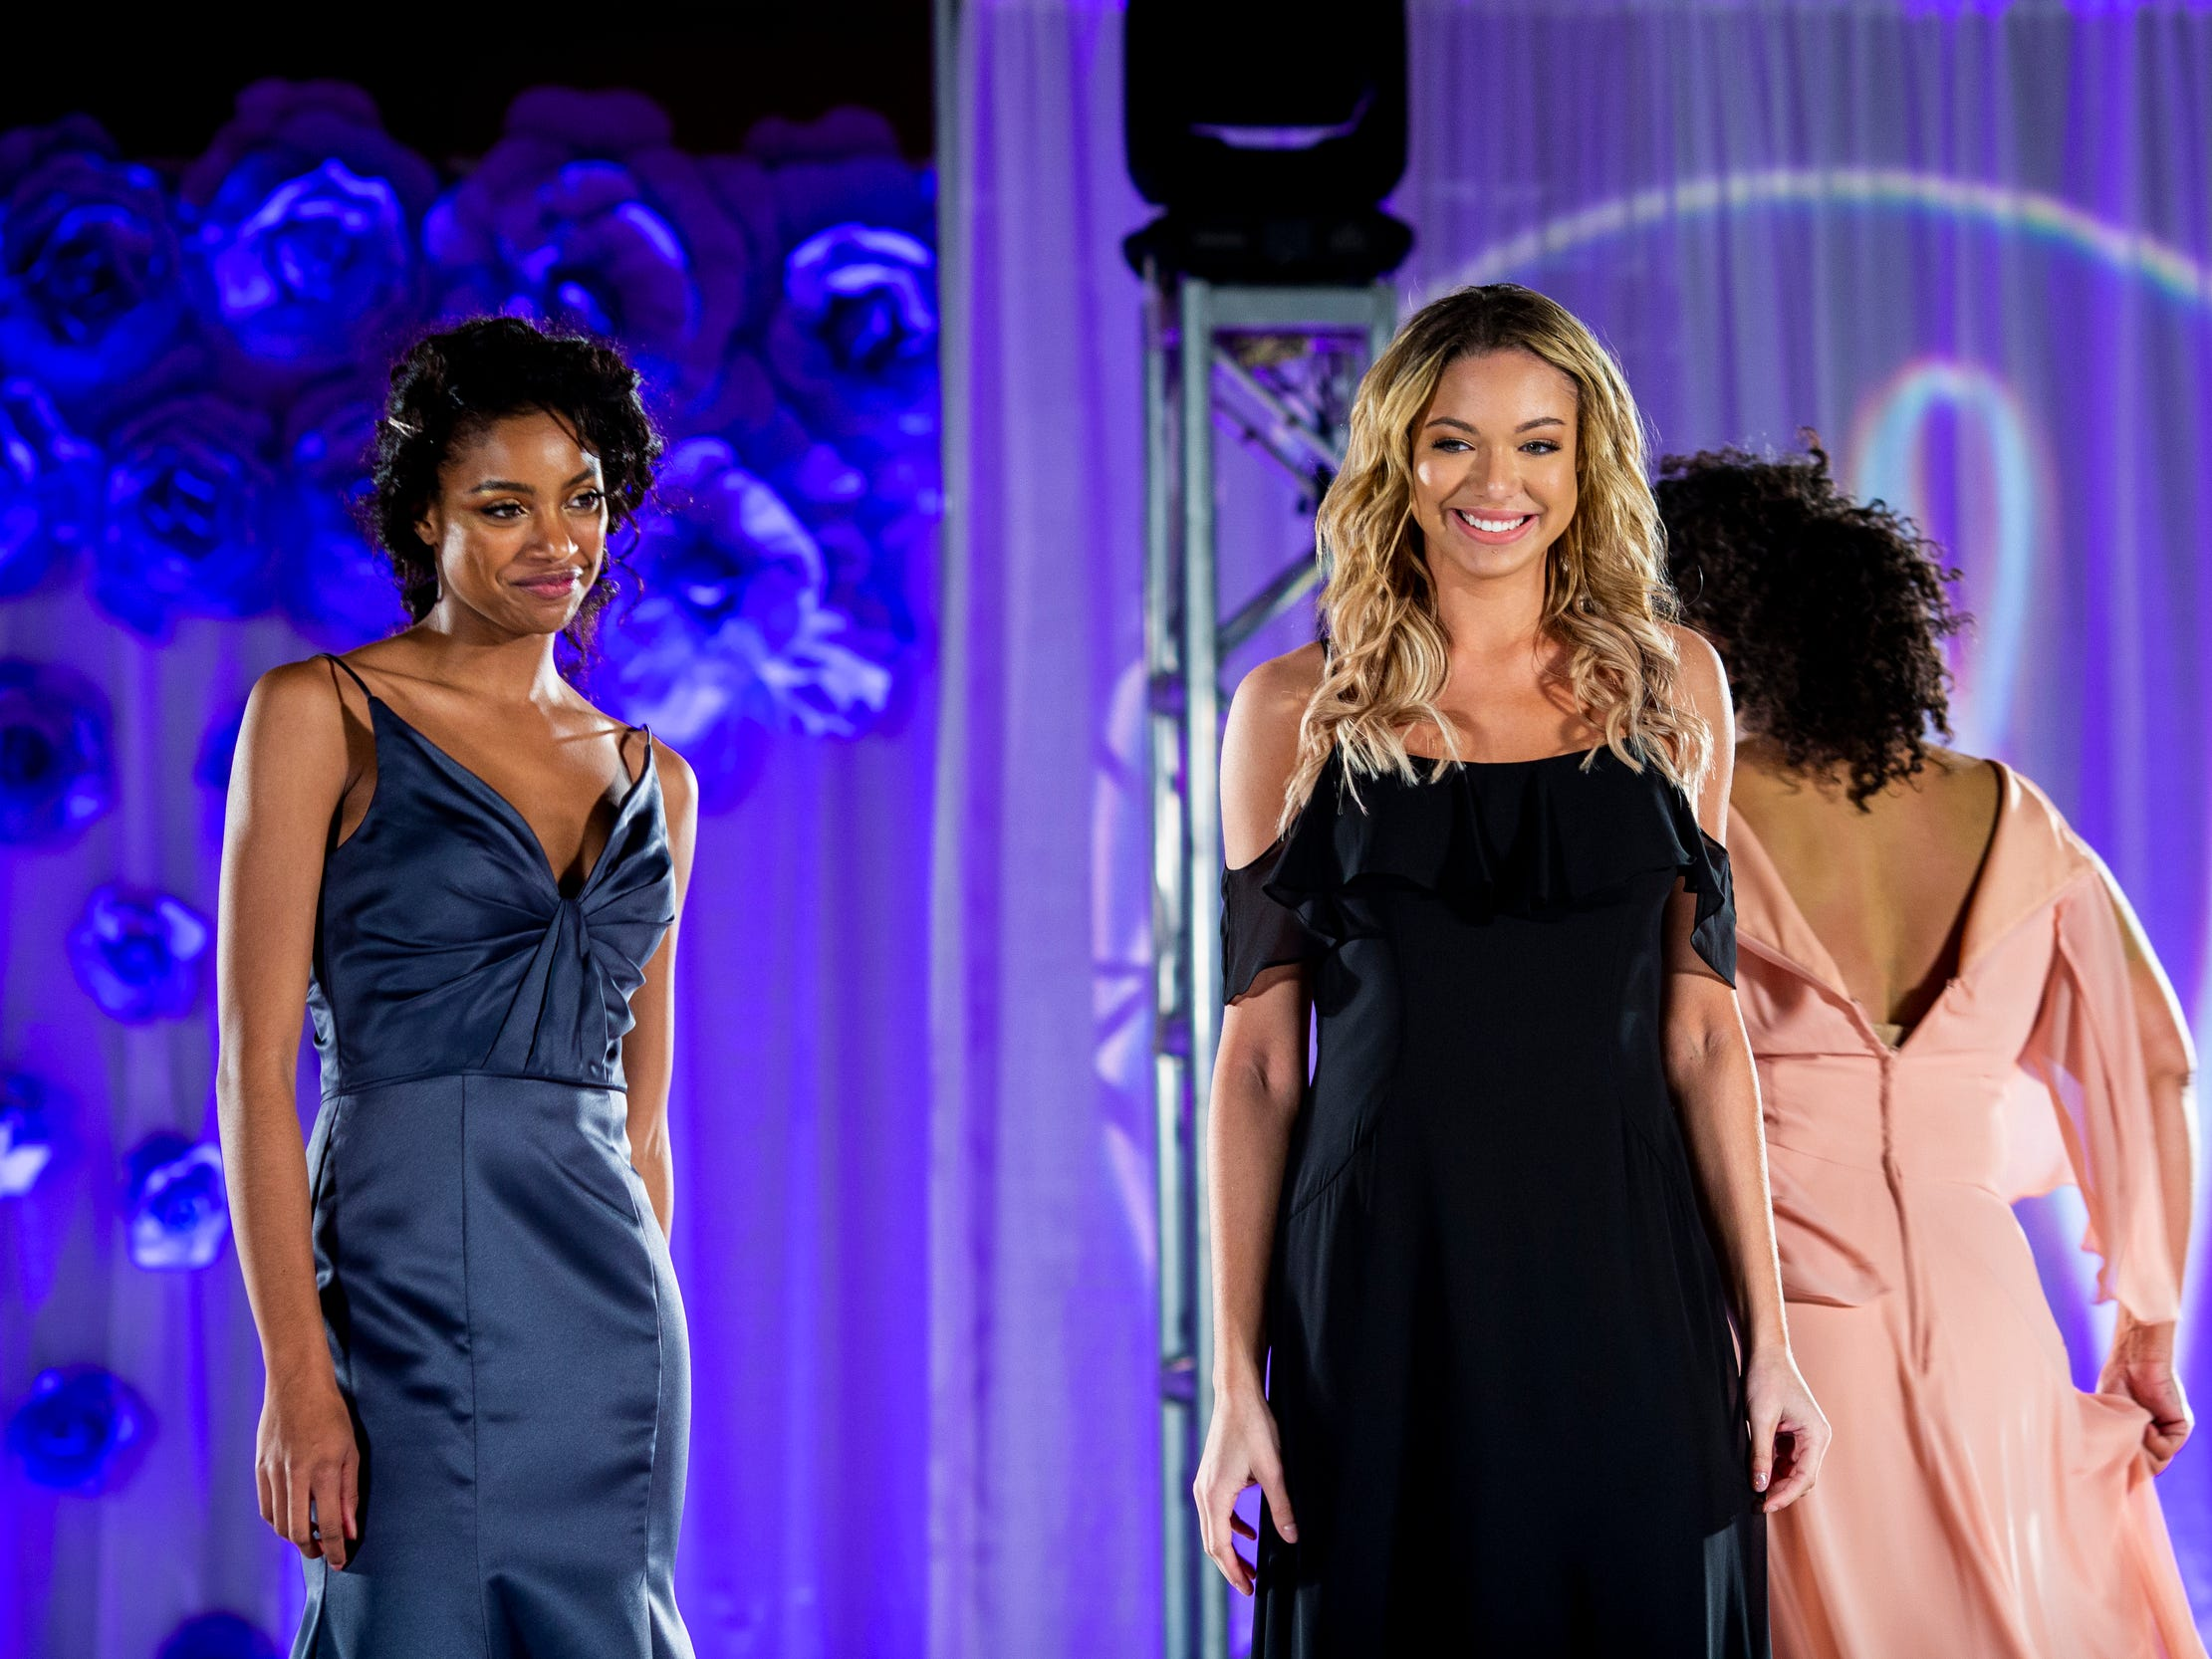 Models wear the latest styles of bridesmaid dresses for the fashion show at the Wendy's Bridal Show at the Duke Energy Convention Center Saturday, January 5, 2019 in Downtown Cincinnati.